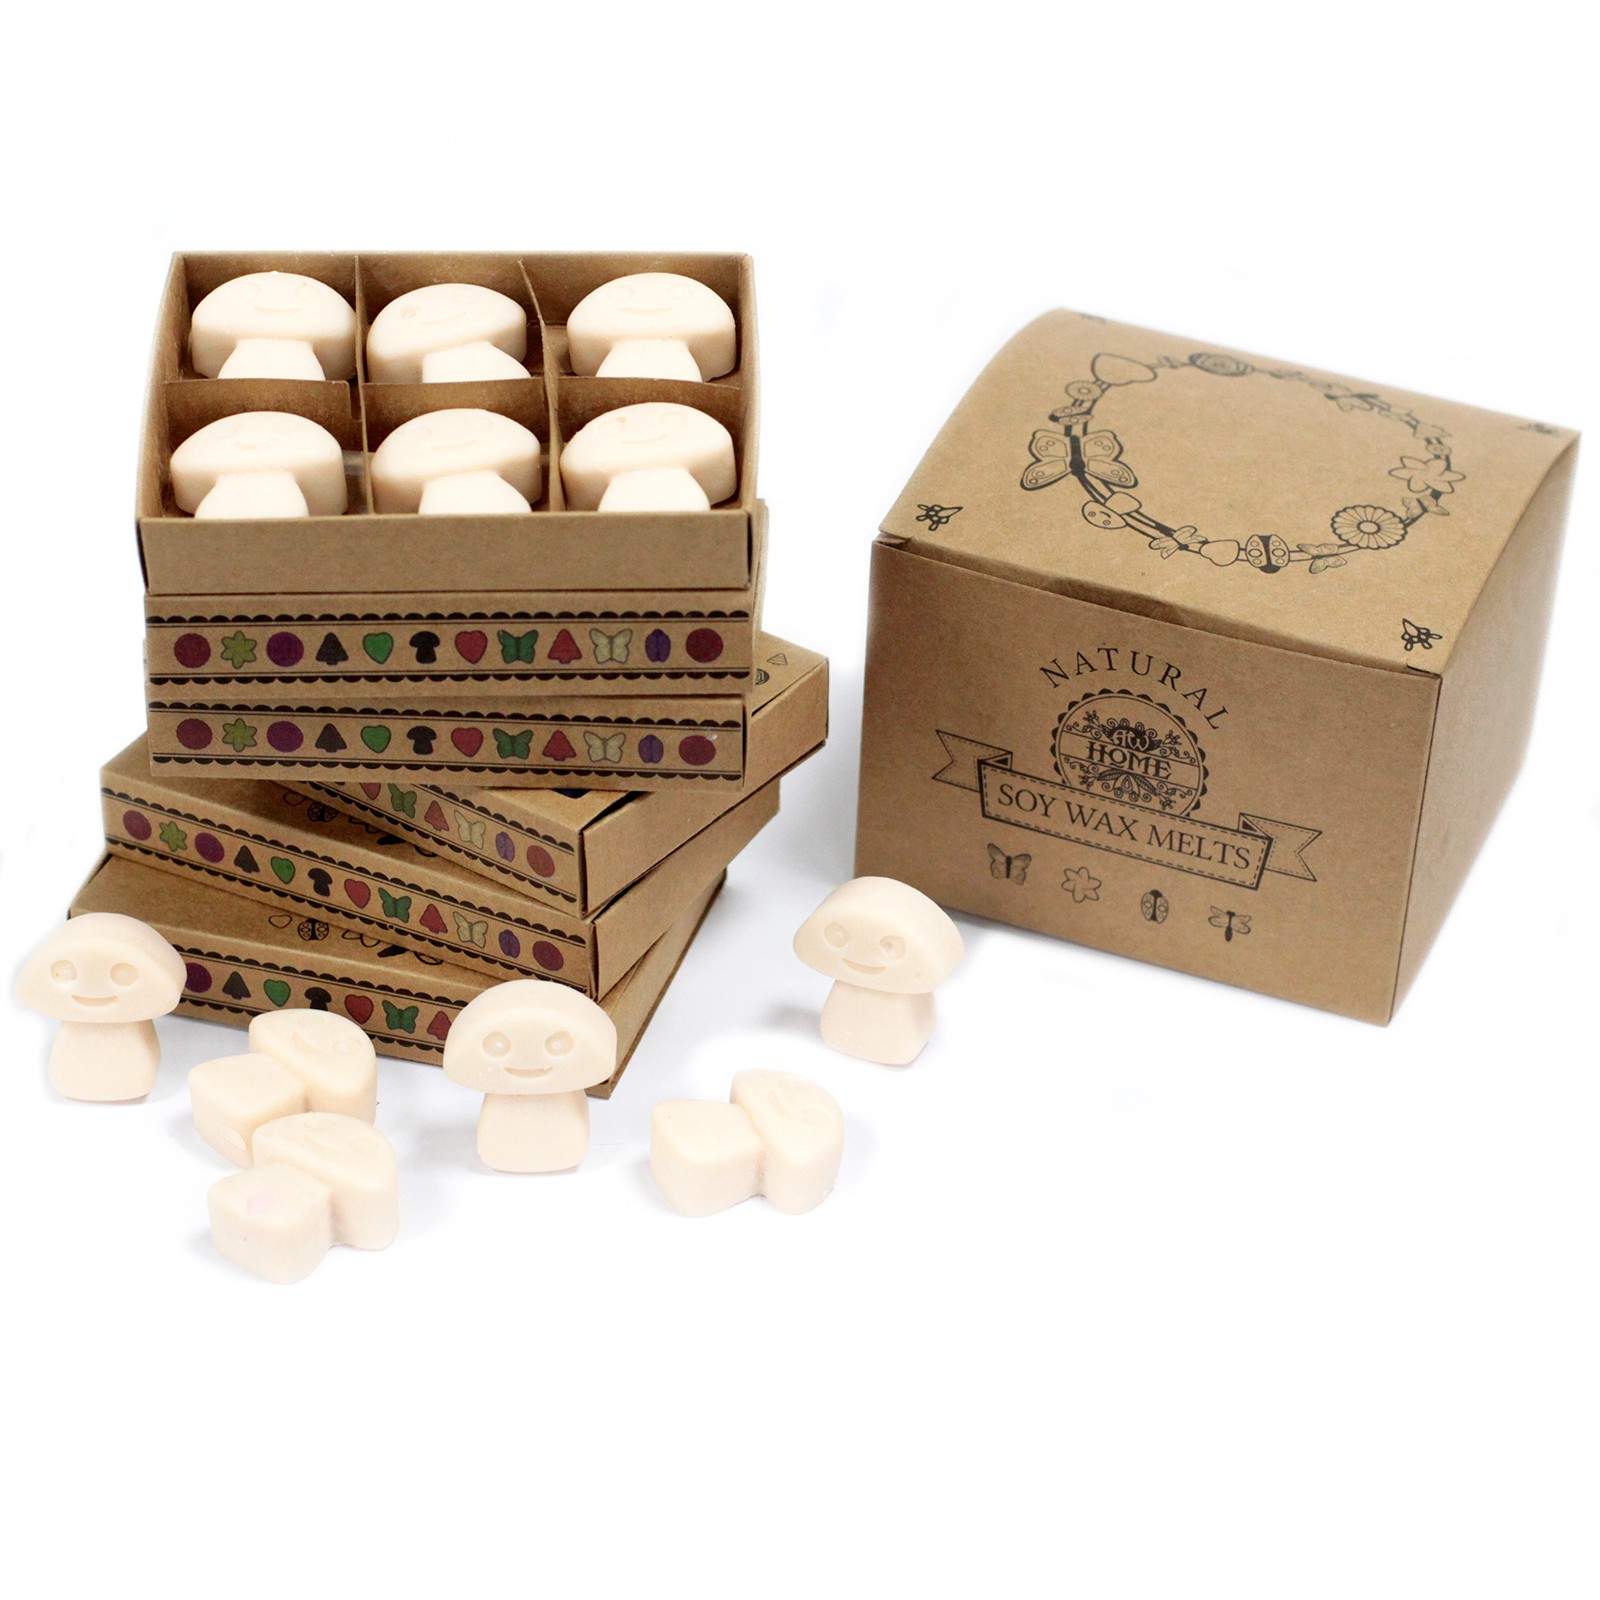 Box of 6 Wax Melts Vanilla Nutmeg